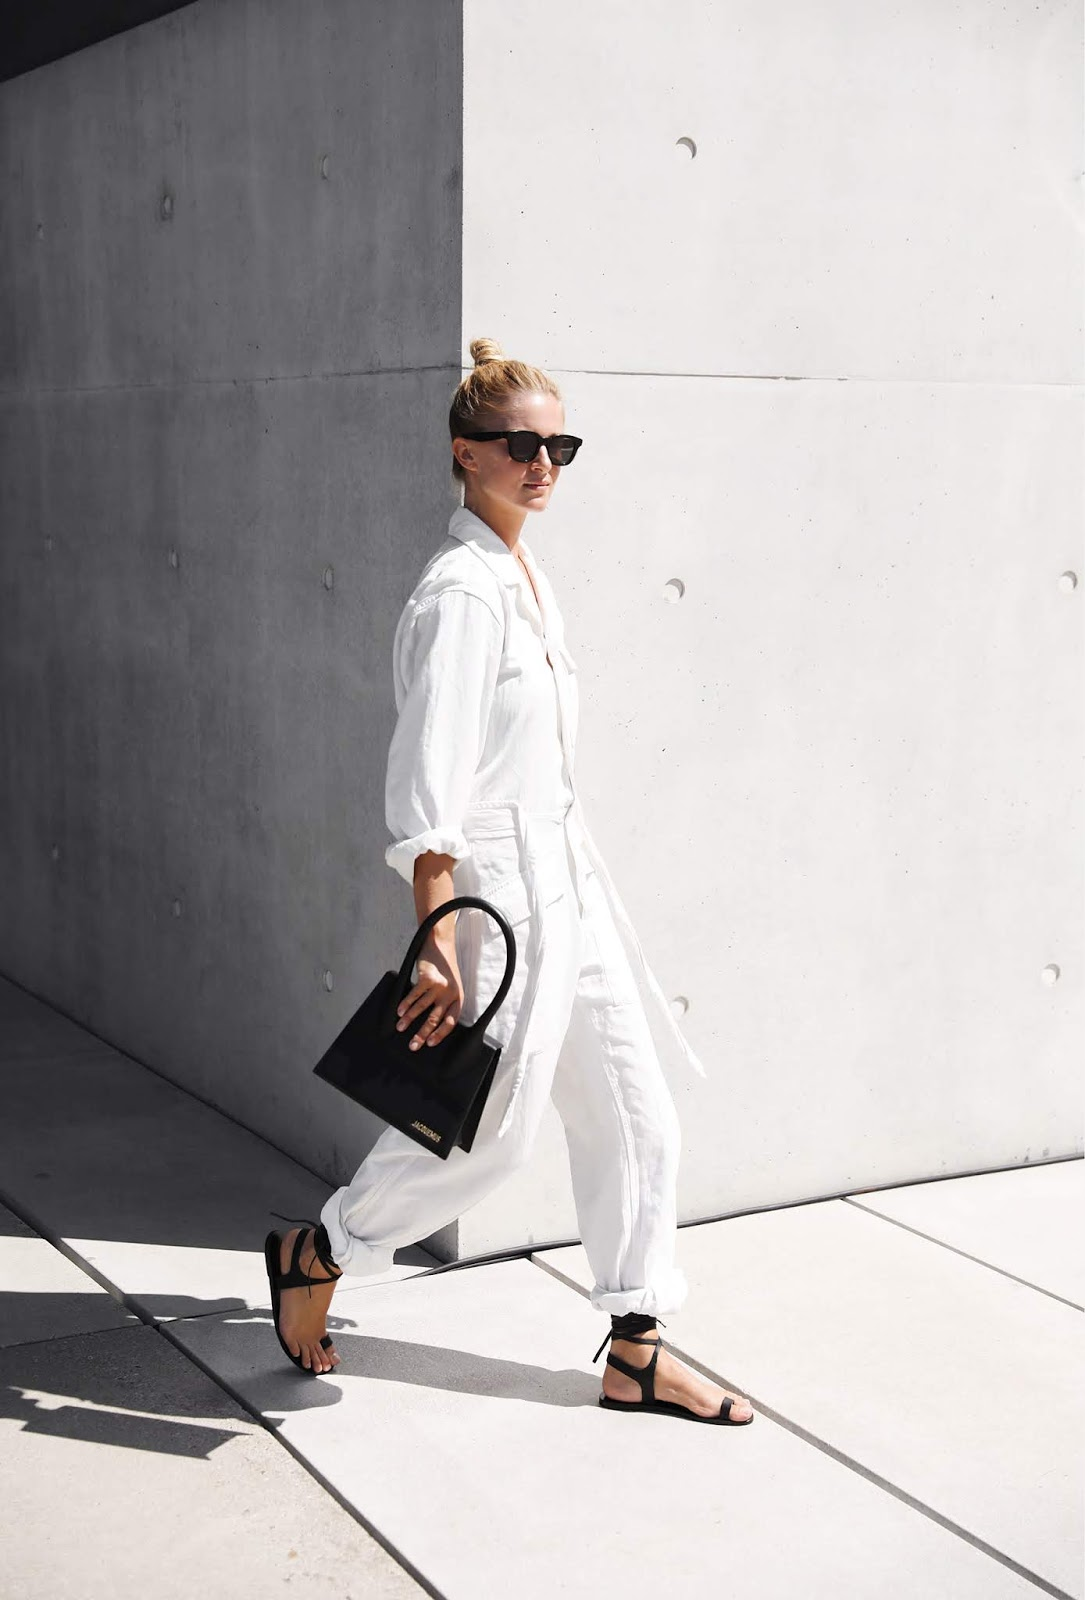 This Blogger Outfit Made Us Want a White Utility Jumpsuit — Mirjam Flatau Instagram